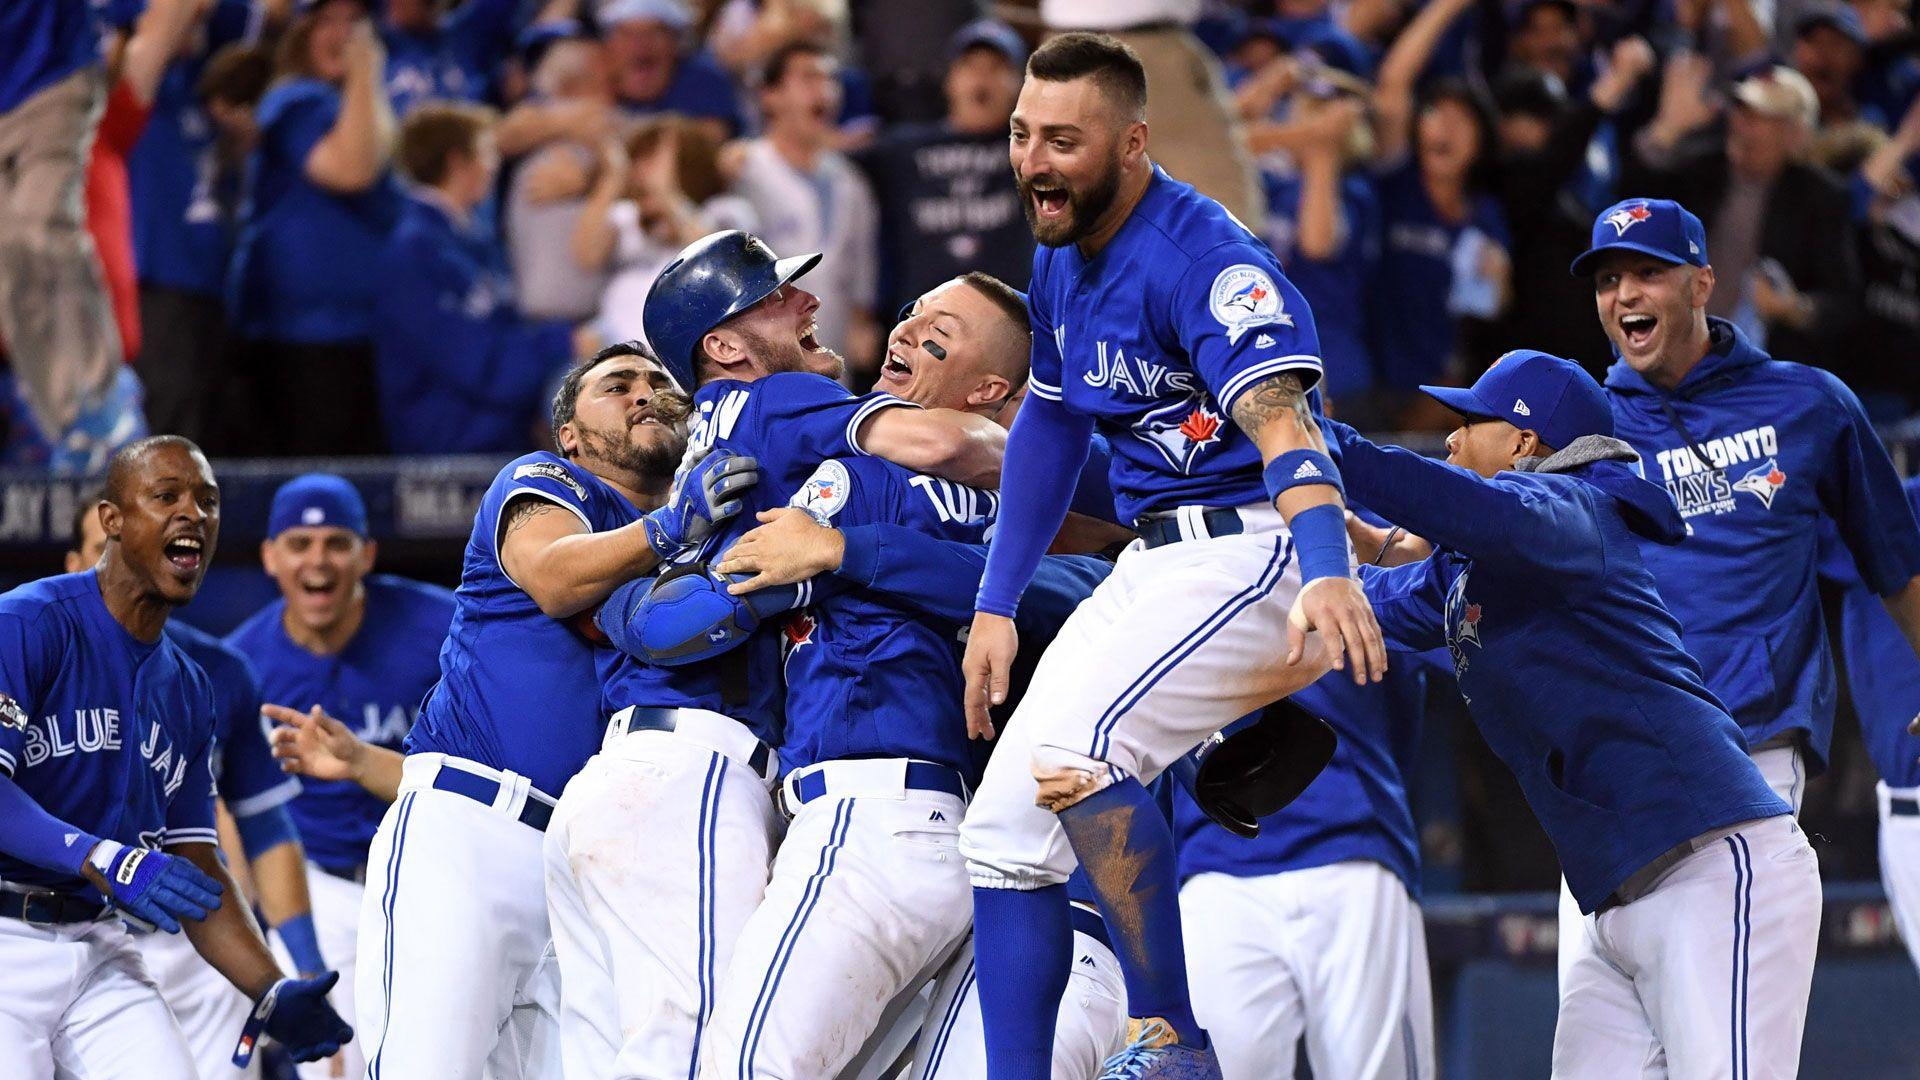 Blue Jays sweep Rangers, head to ALCS on Donaldson's dash home